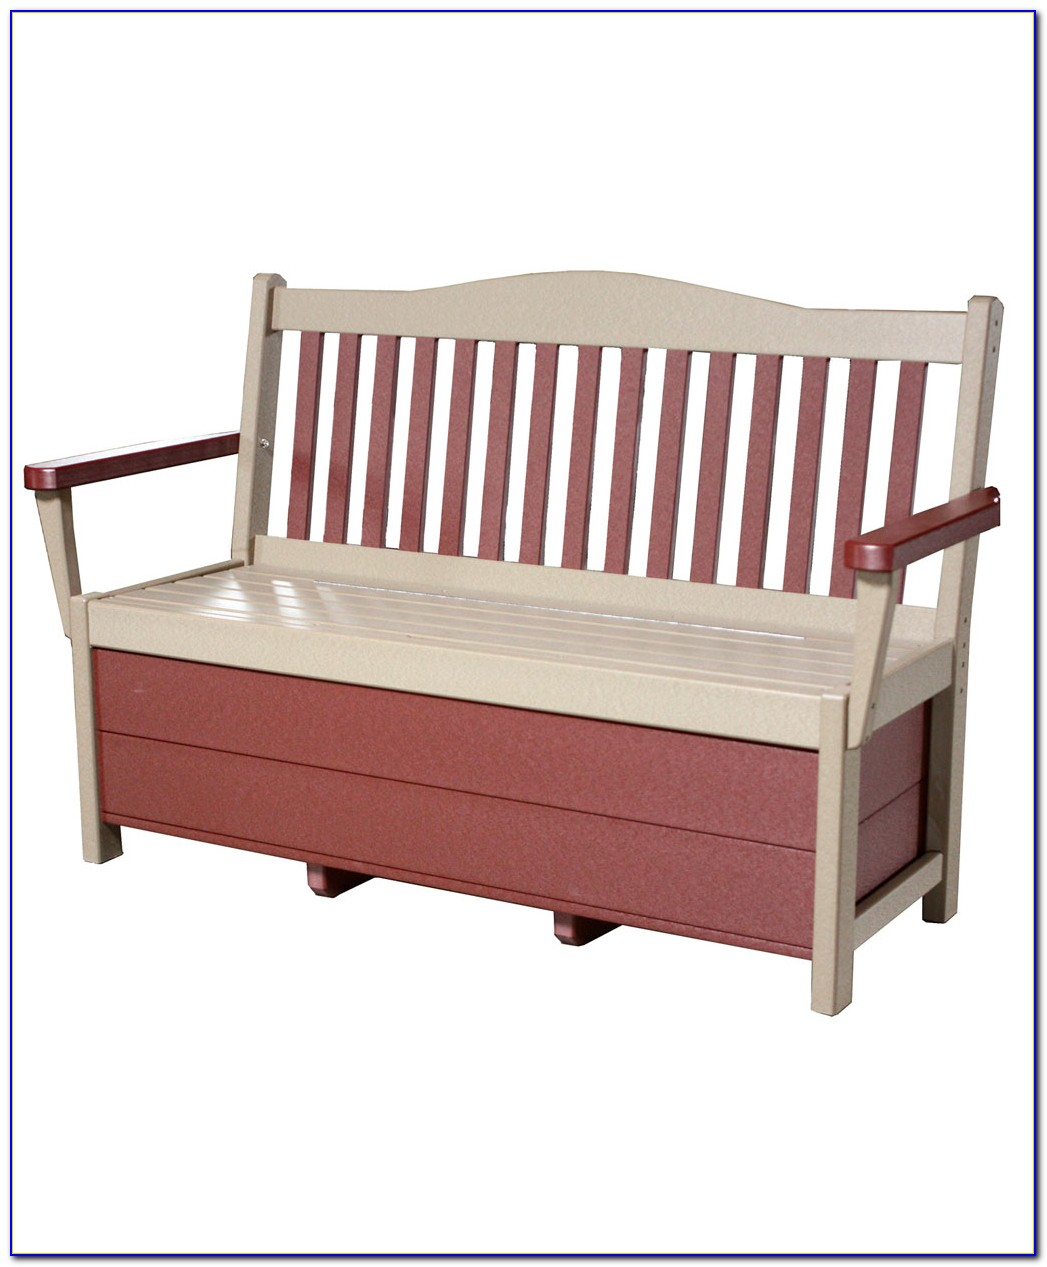 Mission Storage Bench With Baskets